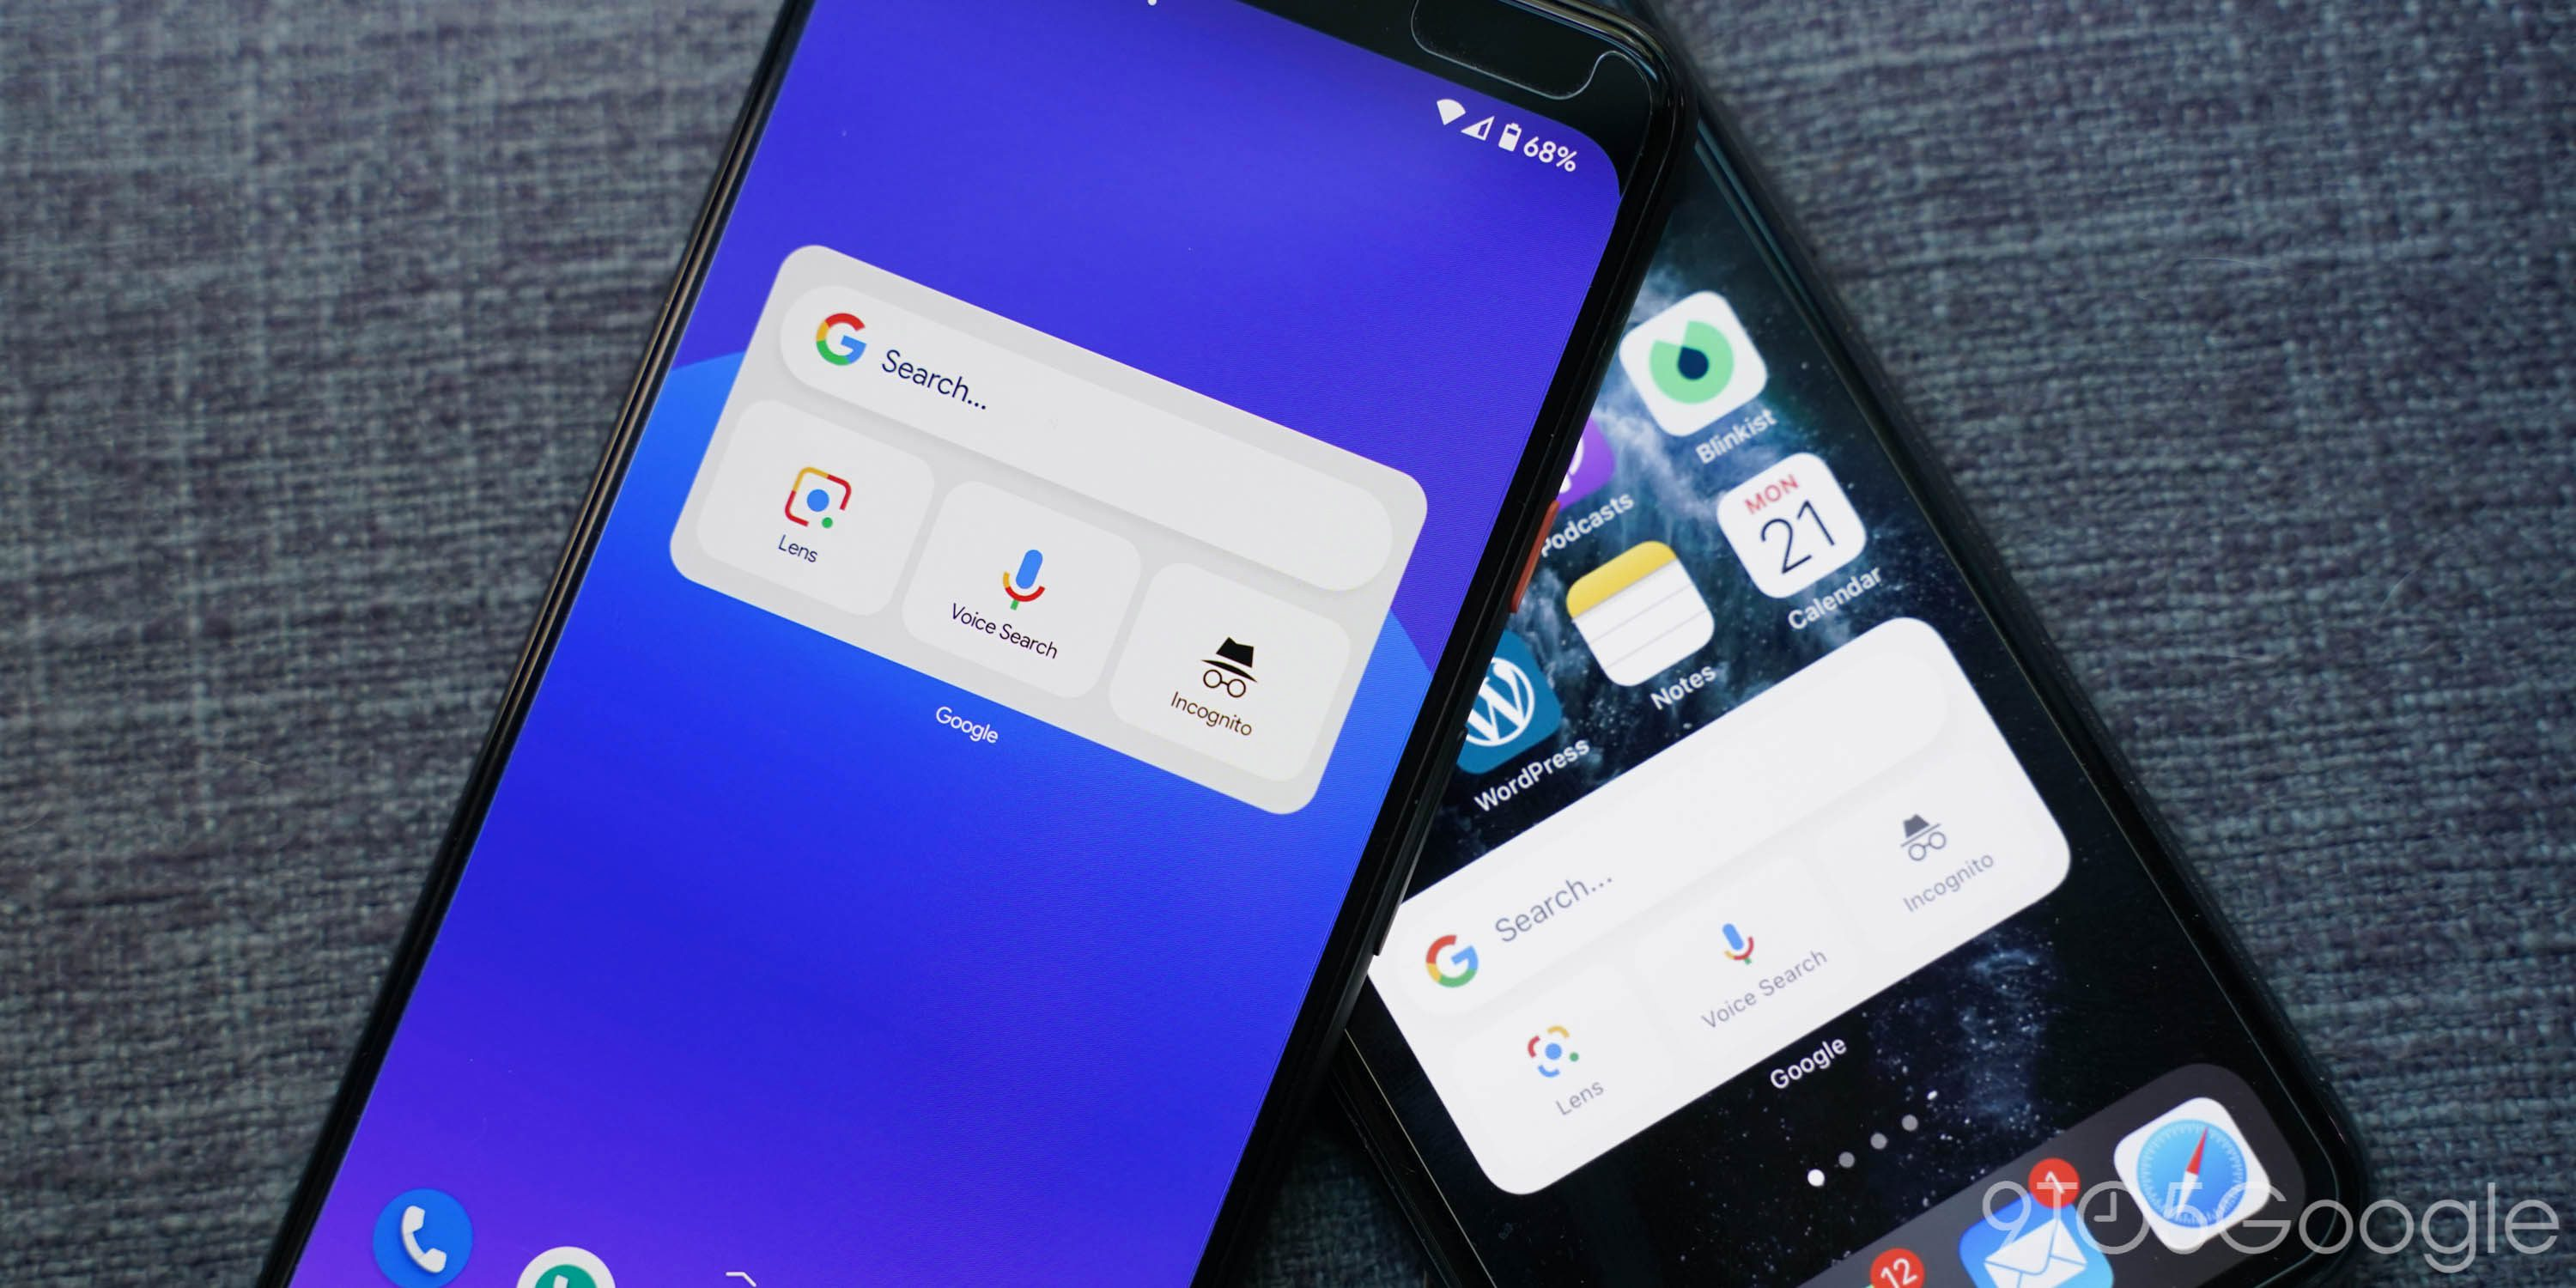 Here's how to add Google's iOS 14 widgets to Android